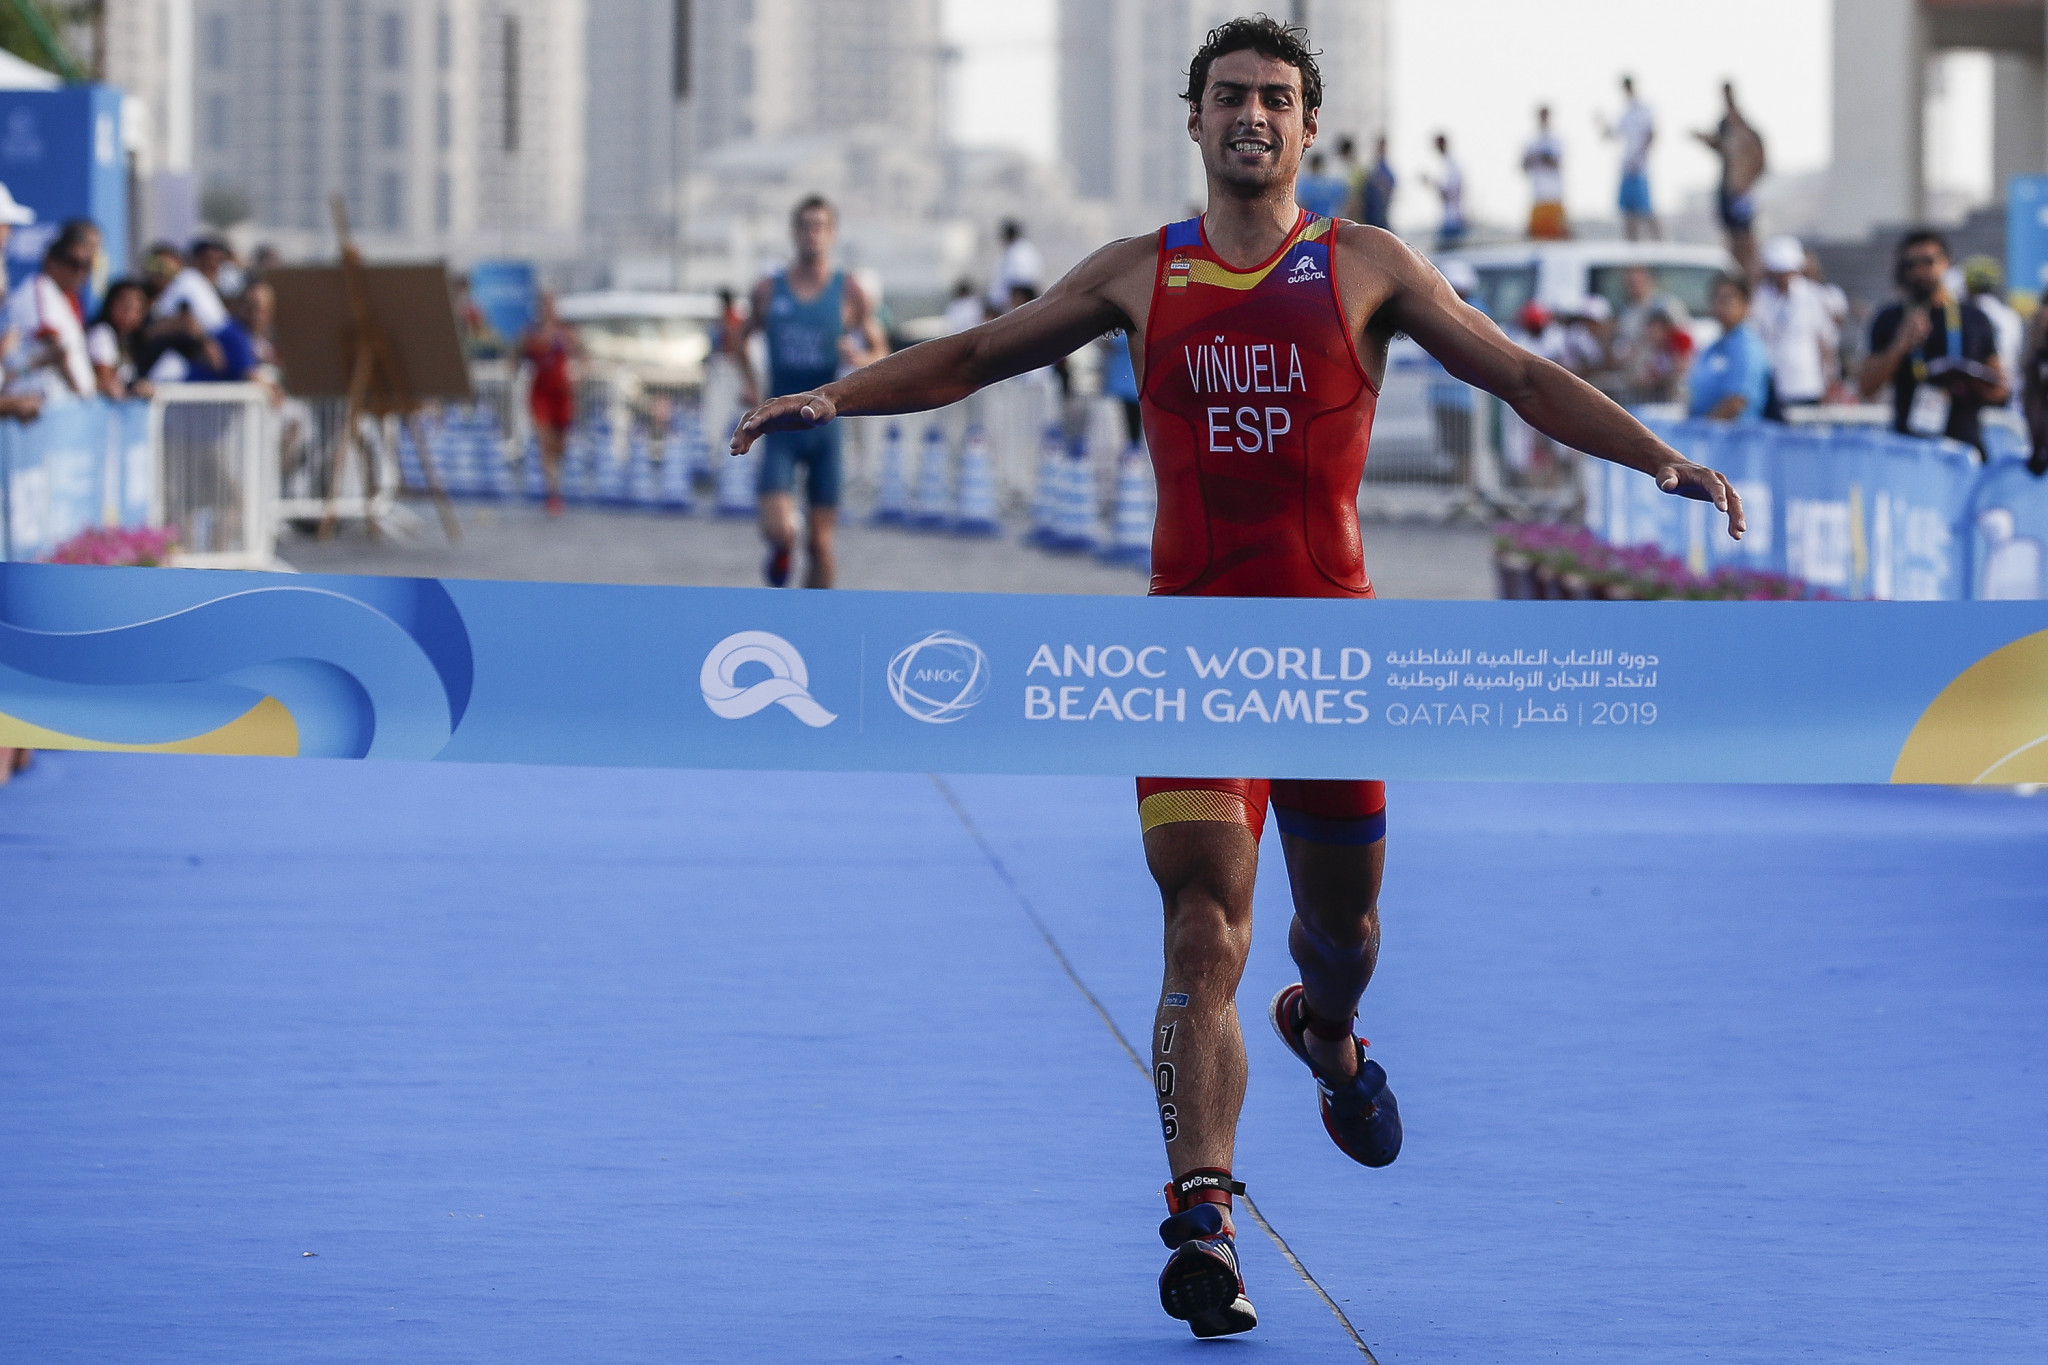 Spain complete another golden double at ANOC World Beach Games